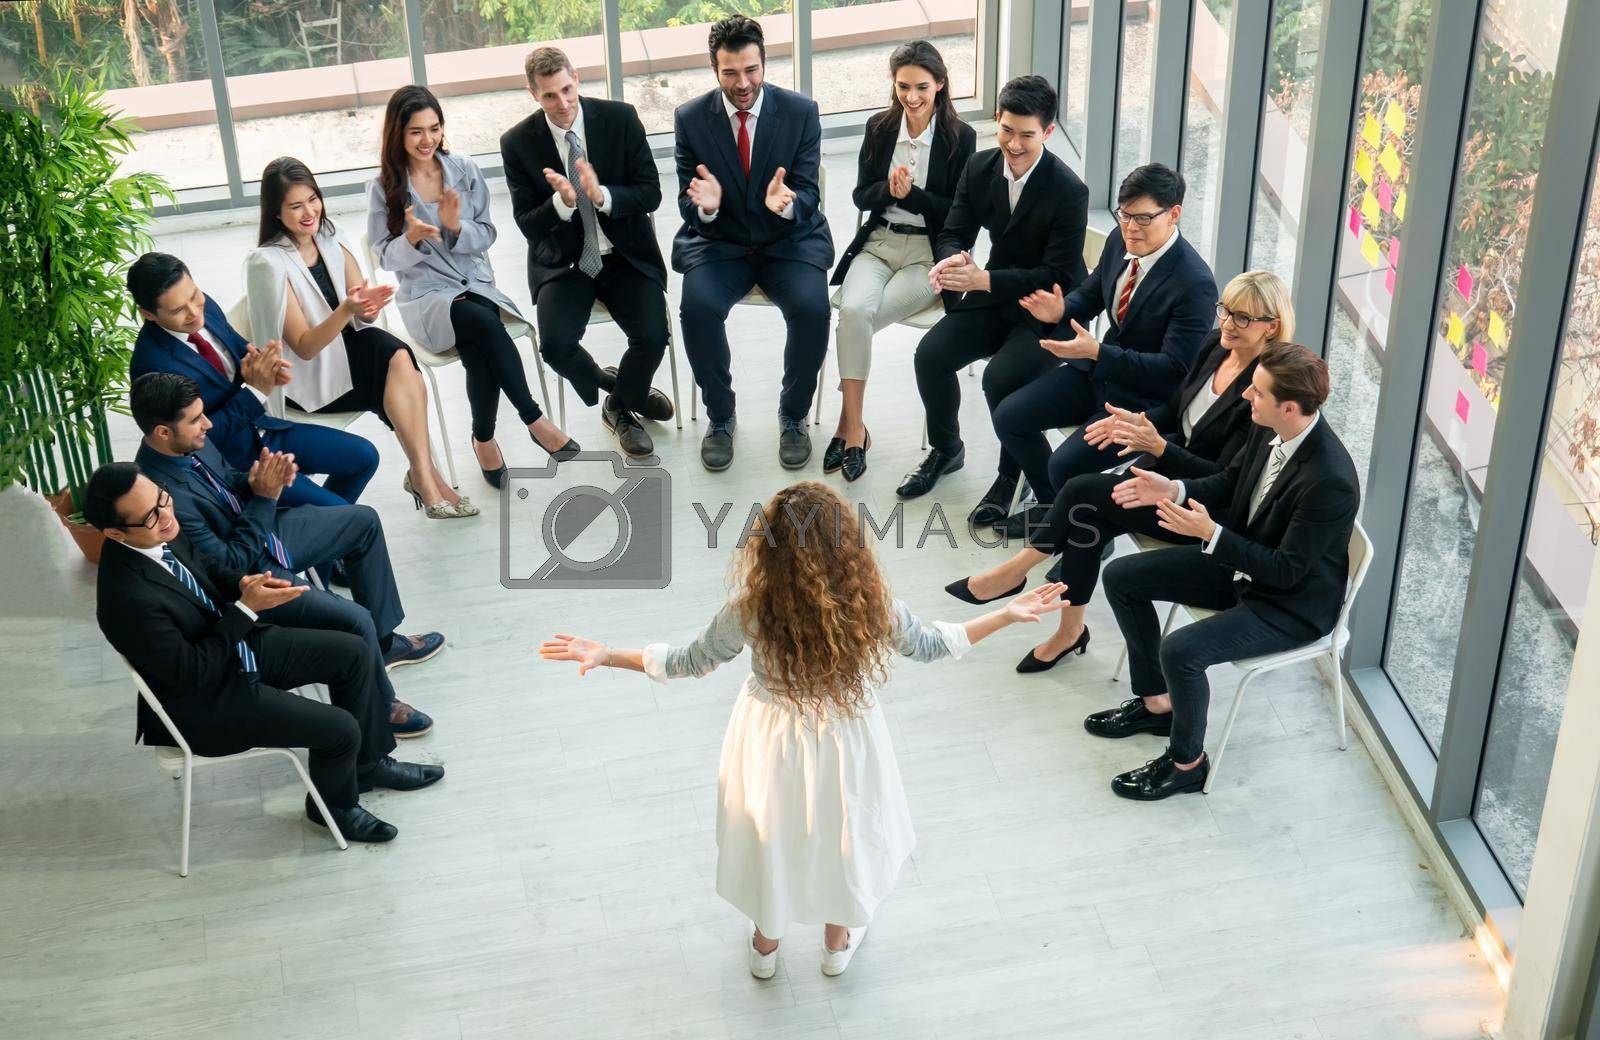 Royalty free image of Shot of a group of businesspeople having a discussion in an office by chuanchai